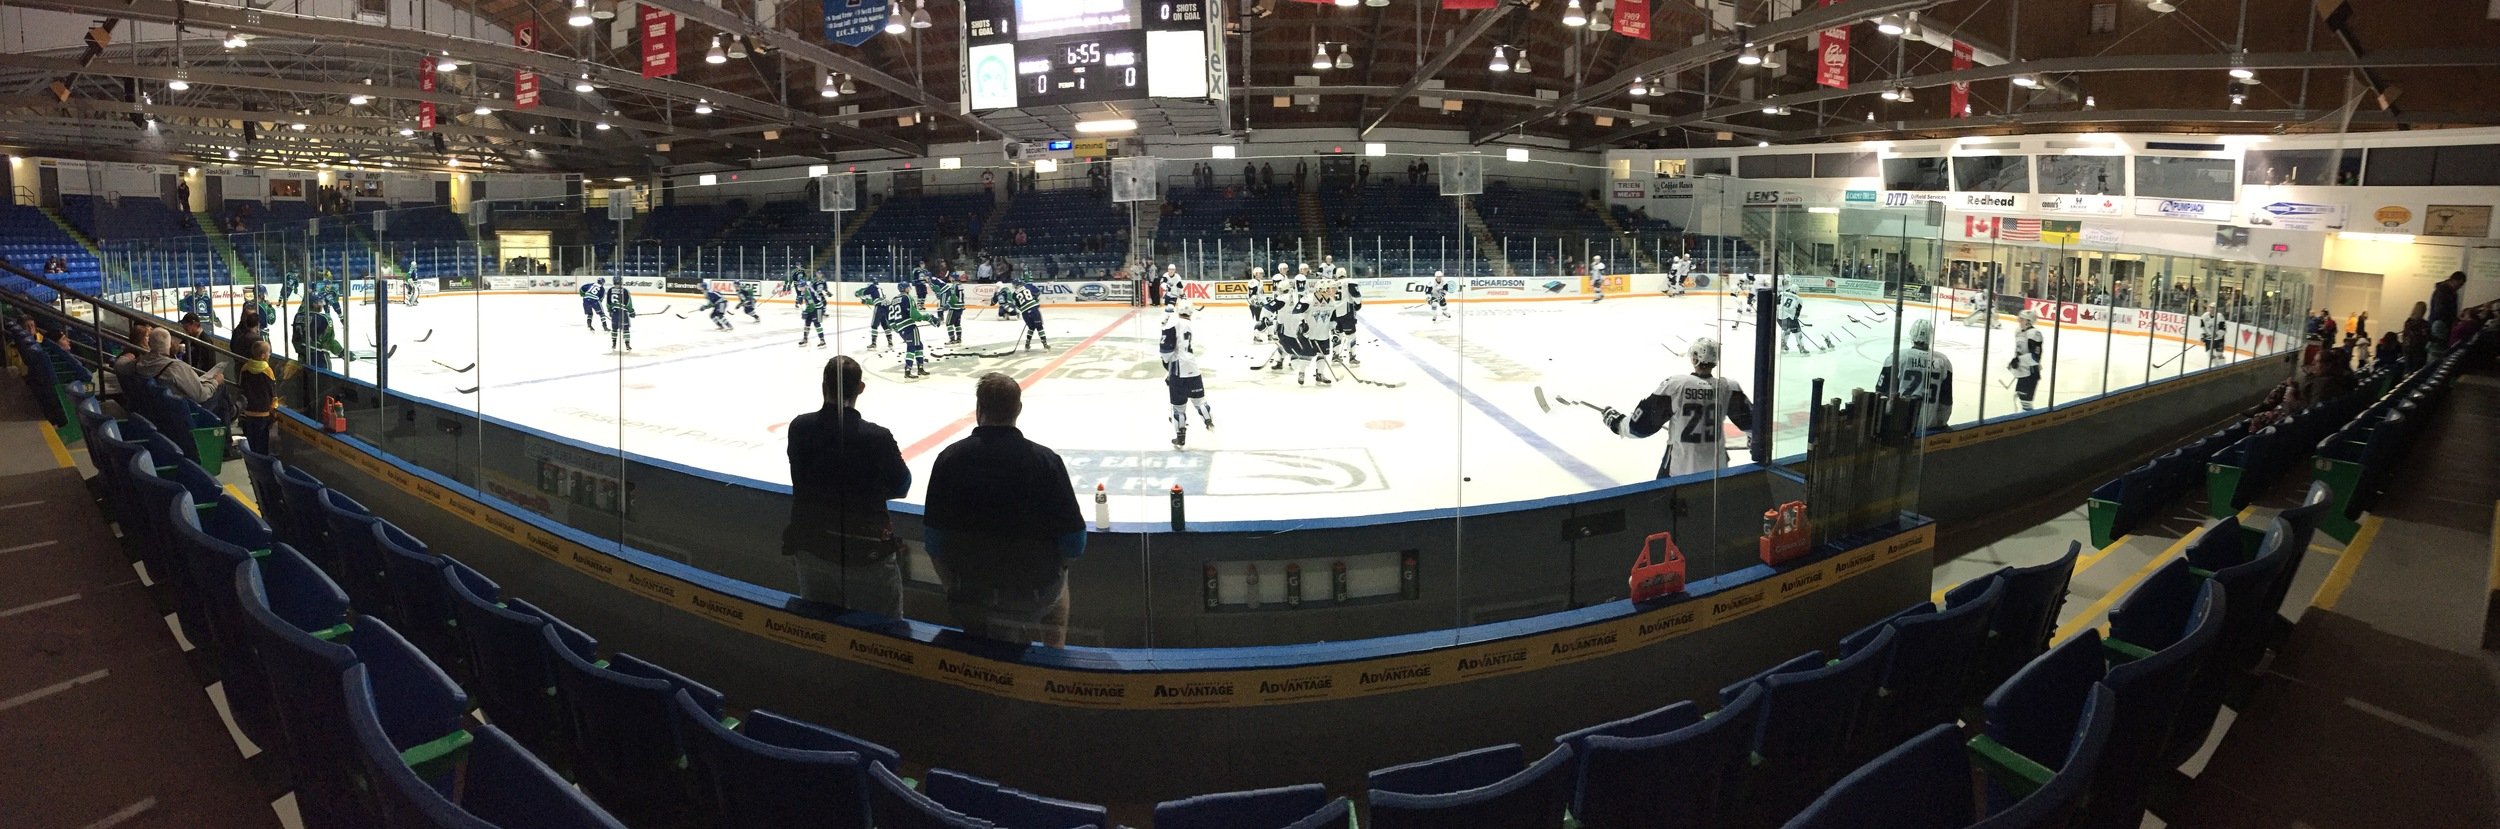 Our family travelled to Swift Current to watch the boys pick up a 4-0 win!